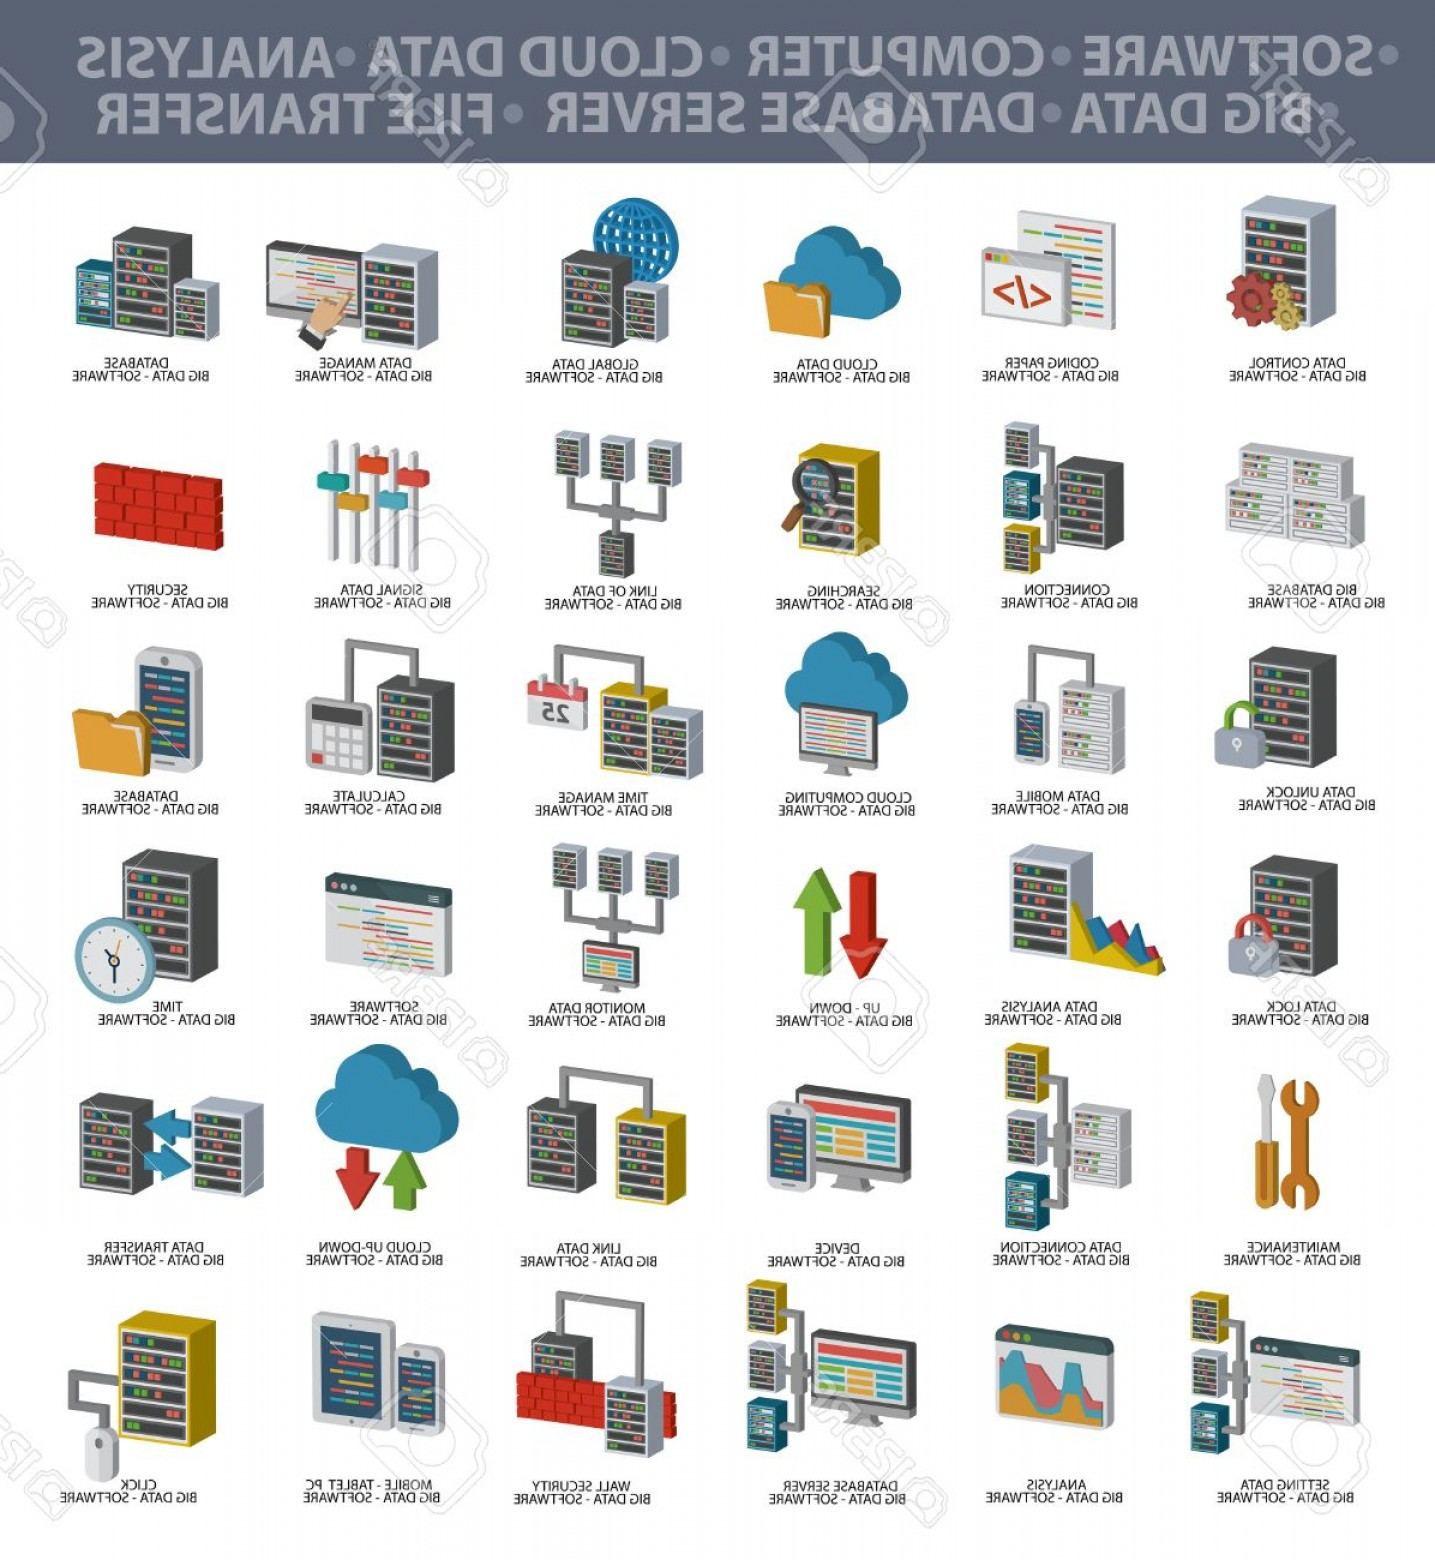 Free Vector File Software: Photostock Vector Software Big Data Computer Cloud Computing Analysis Database Server File Transfer Data Security And